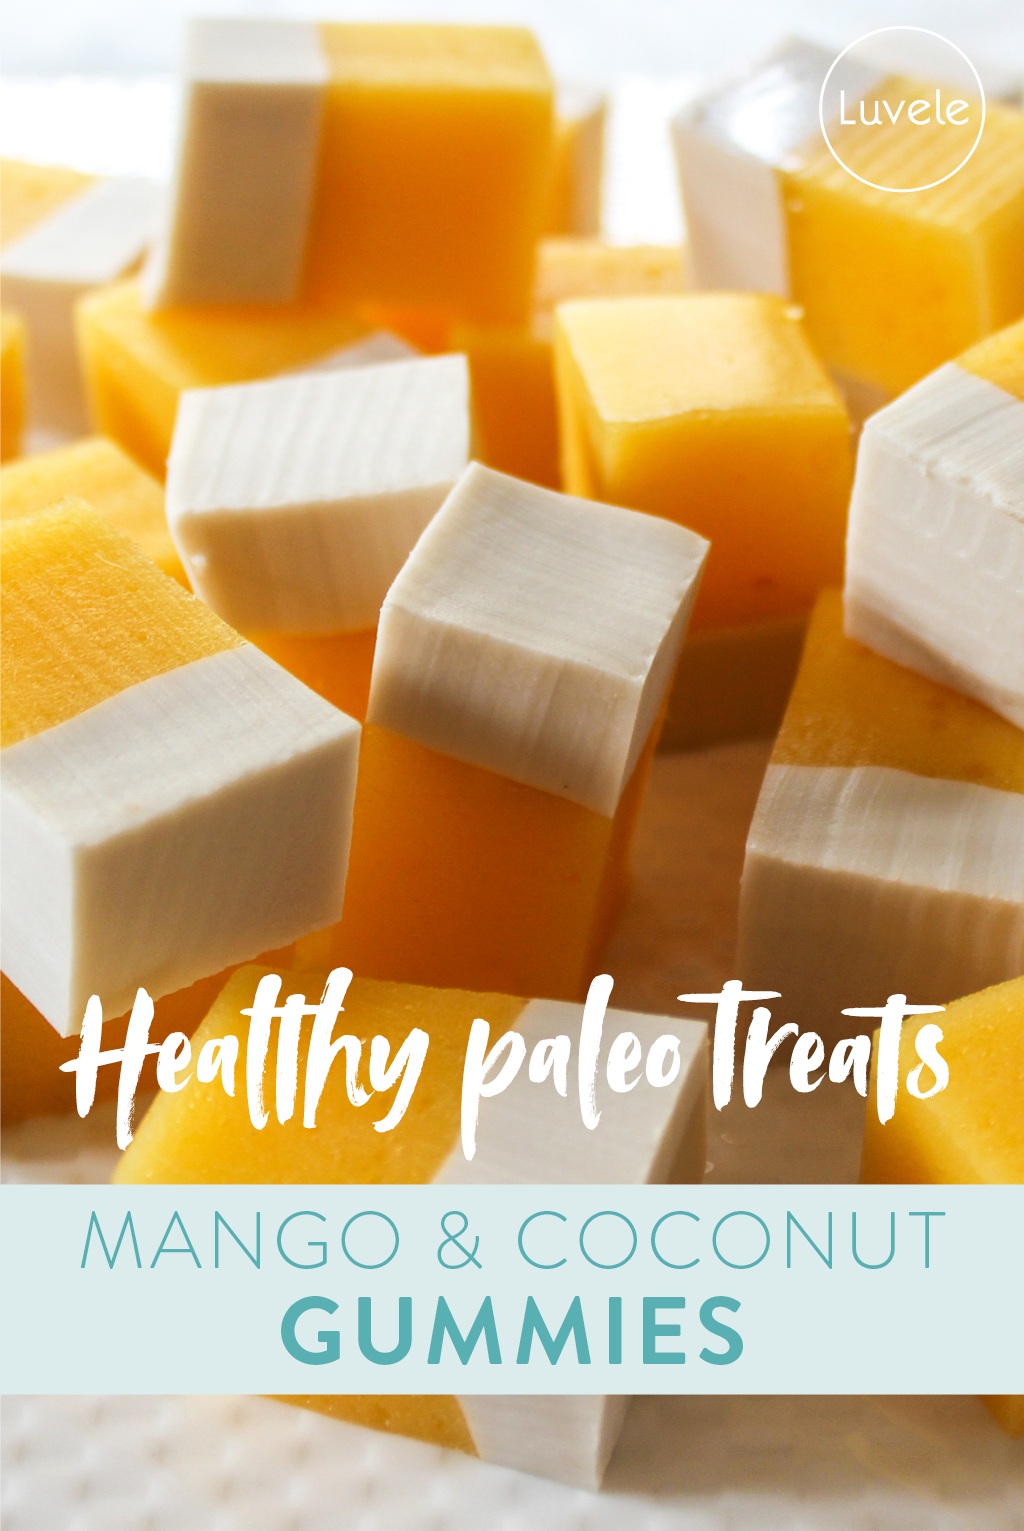 mango and coconut gummies